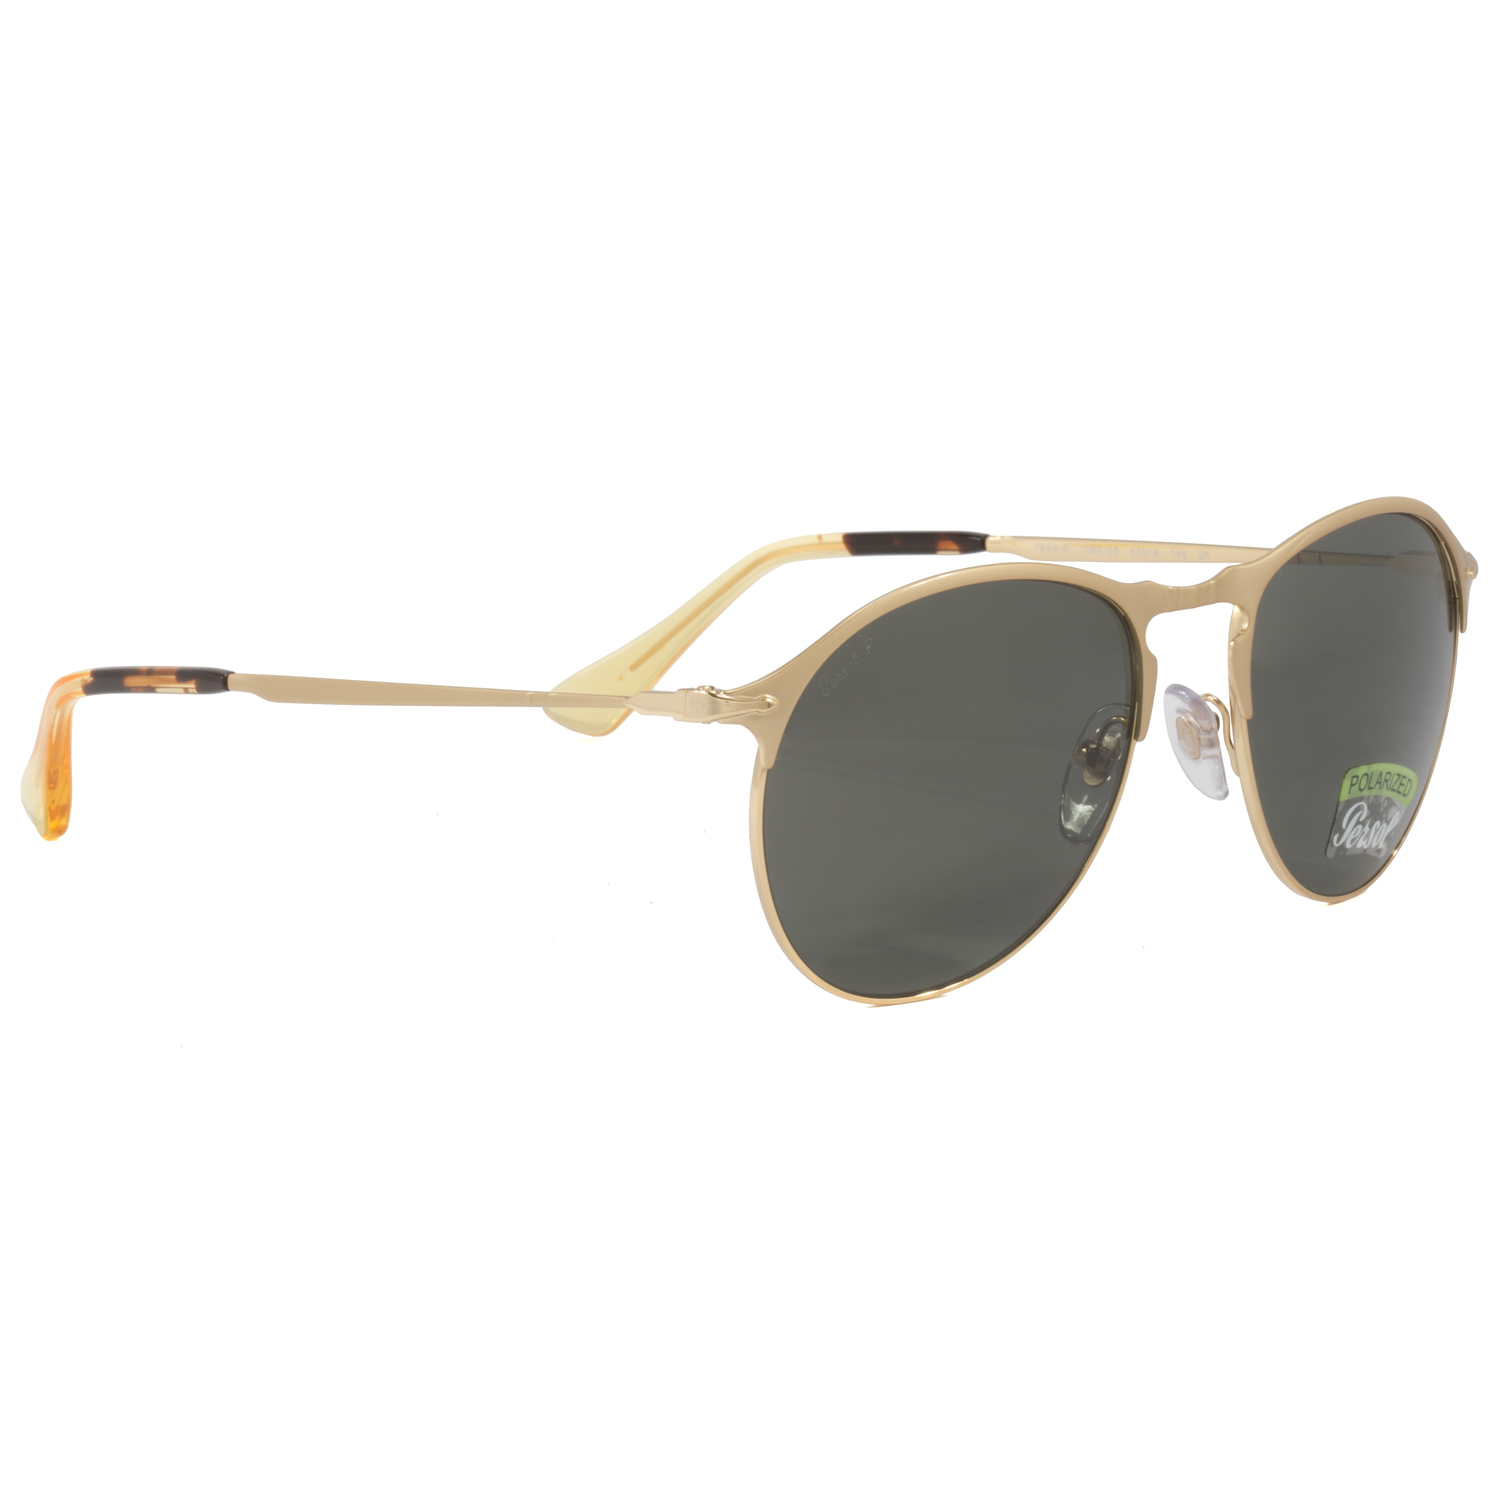 dress - Wear you Trendswould round sunglasses video